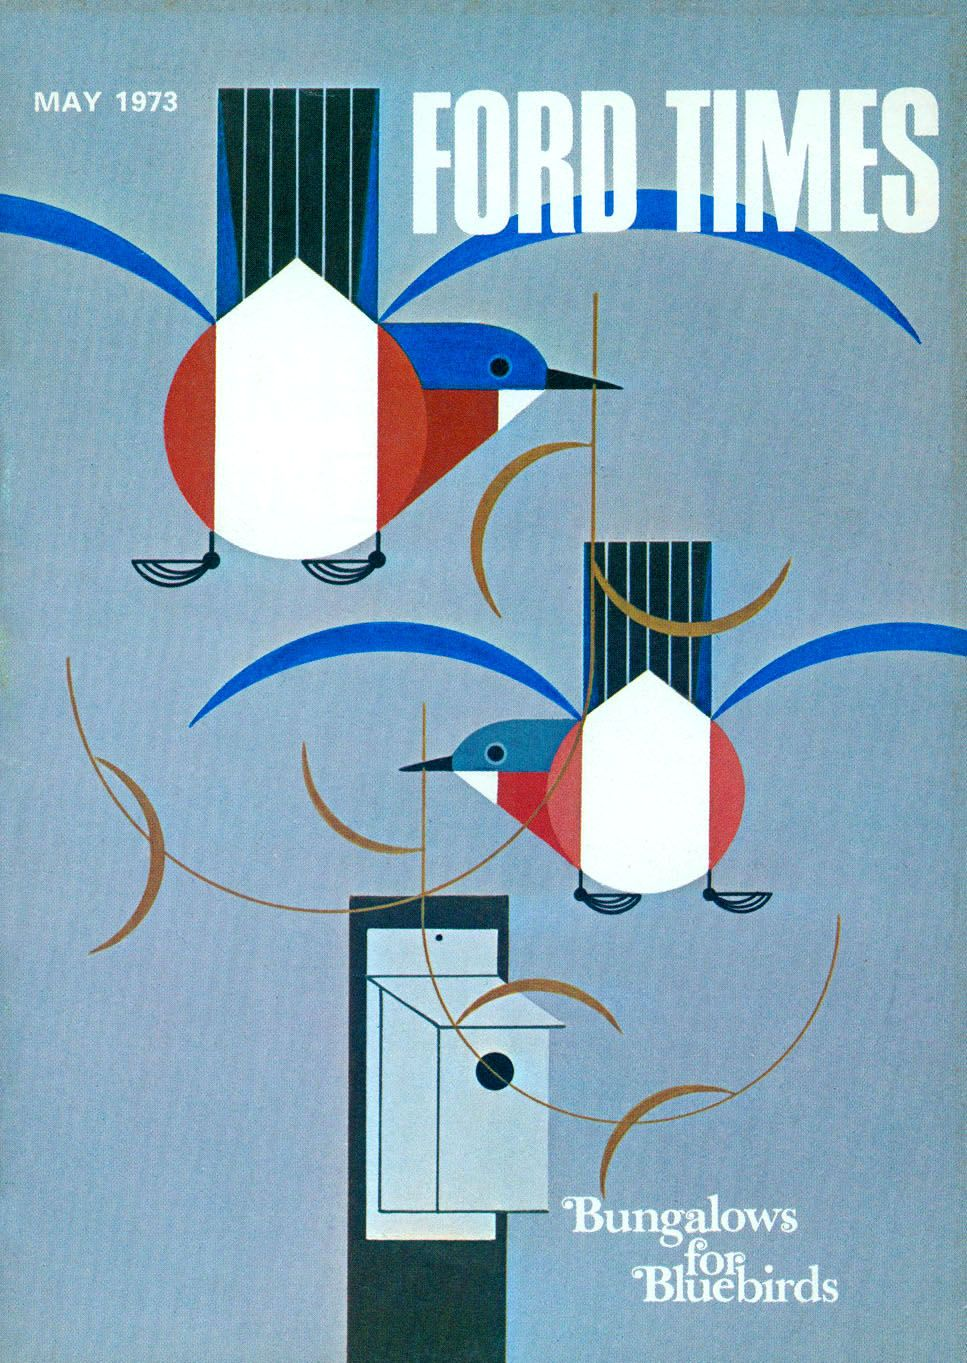 Charley harper bungalows for bluebirds ford times via